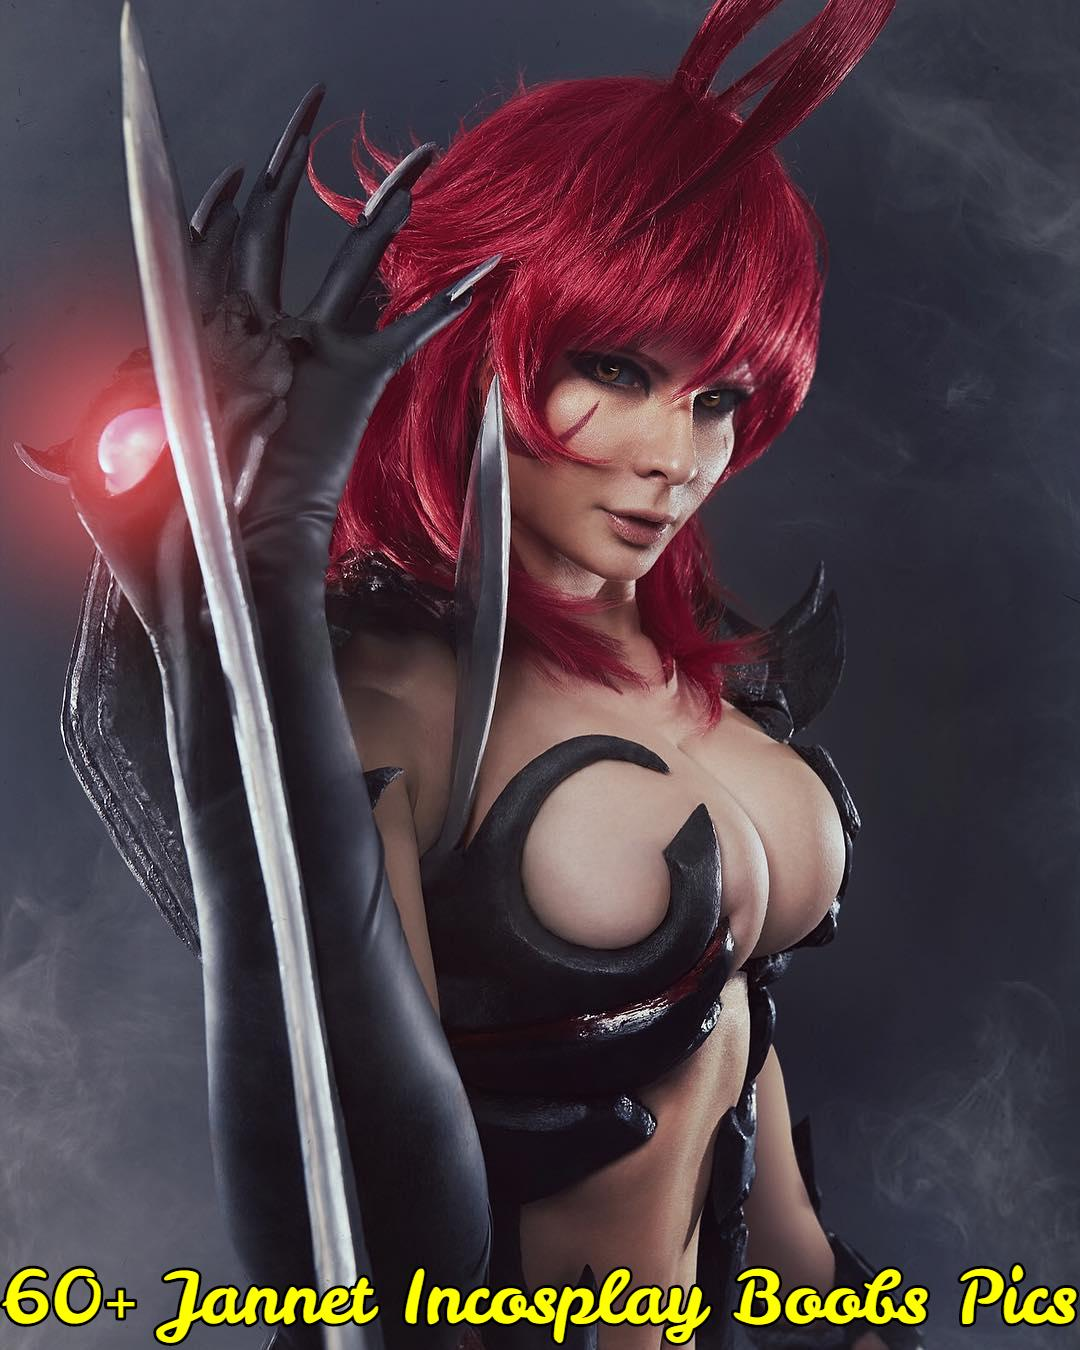 jannet incosplay boobs pics